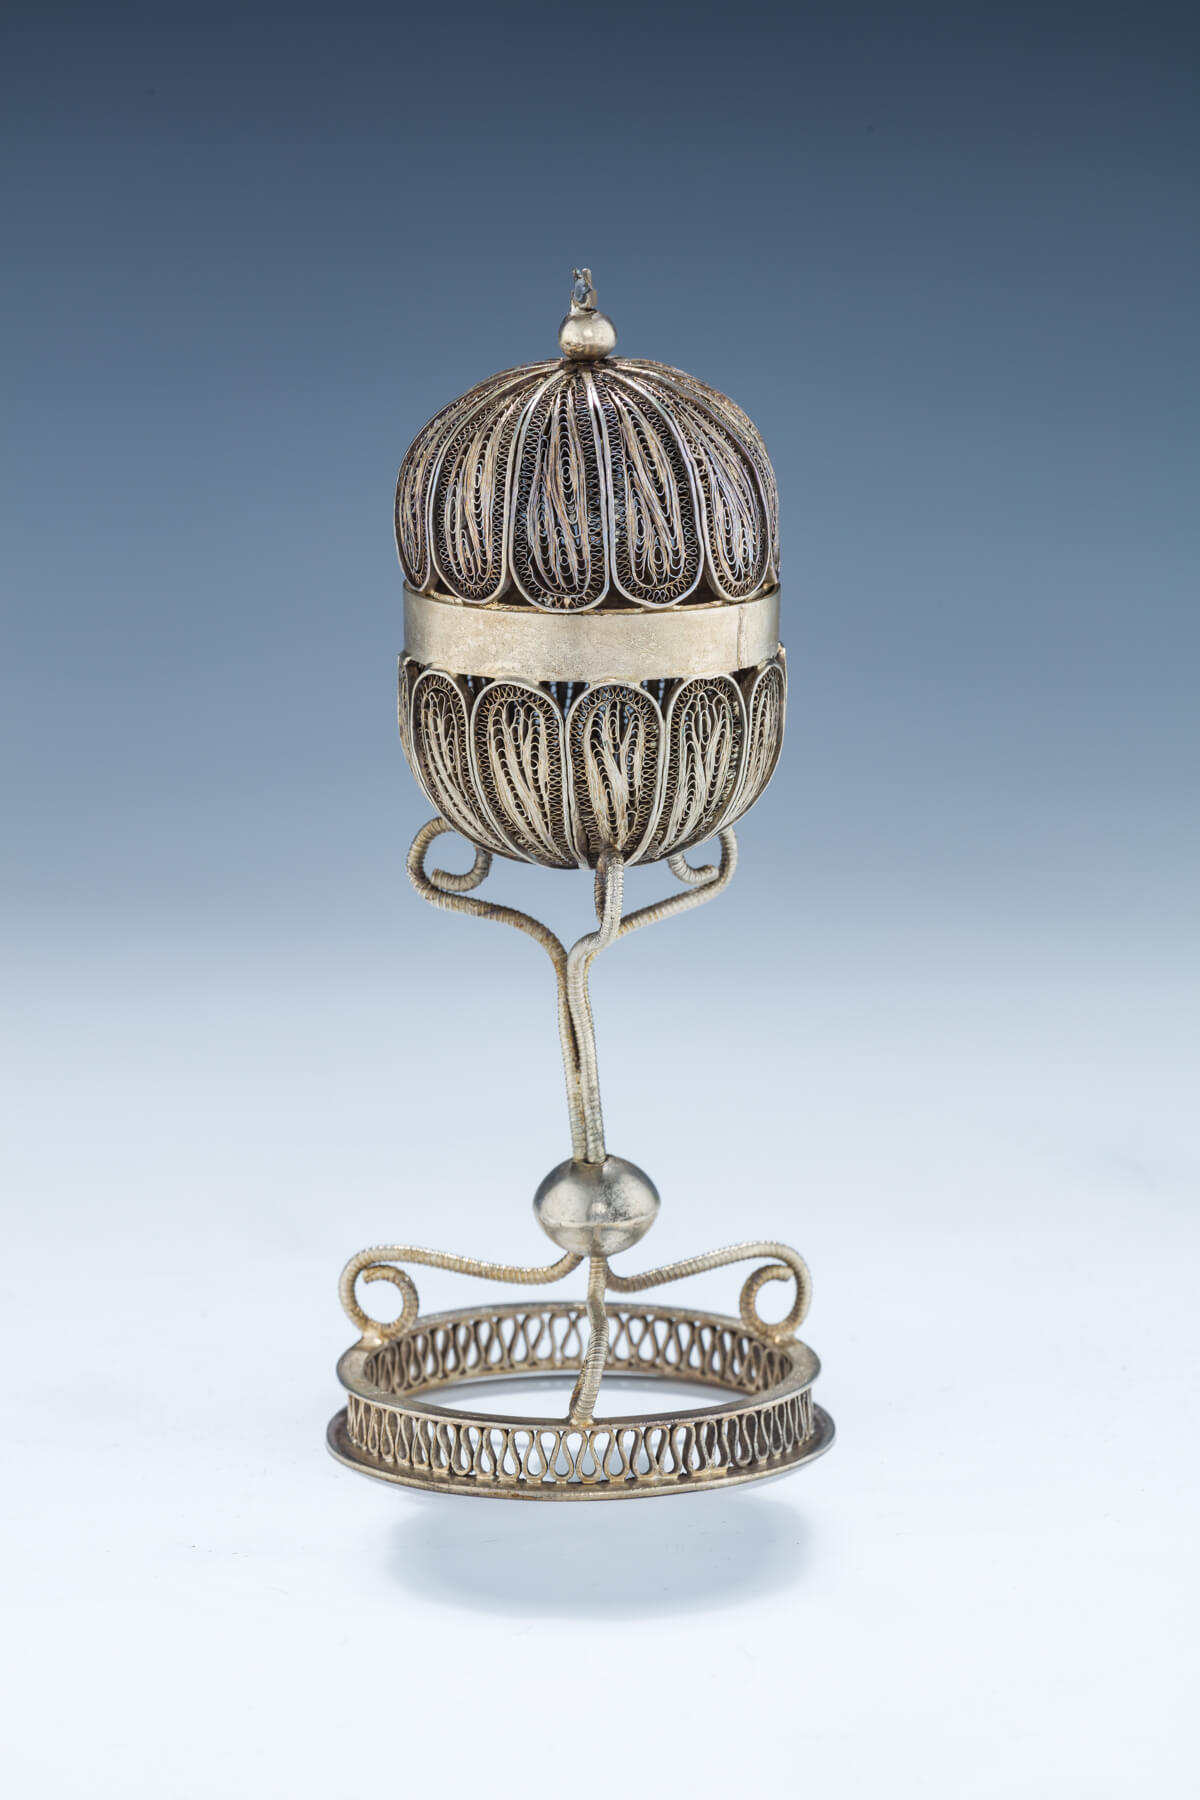 60. A Large Silver Filigree Spice Container